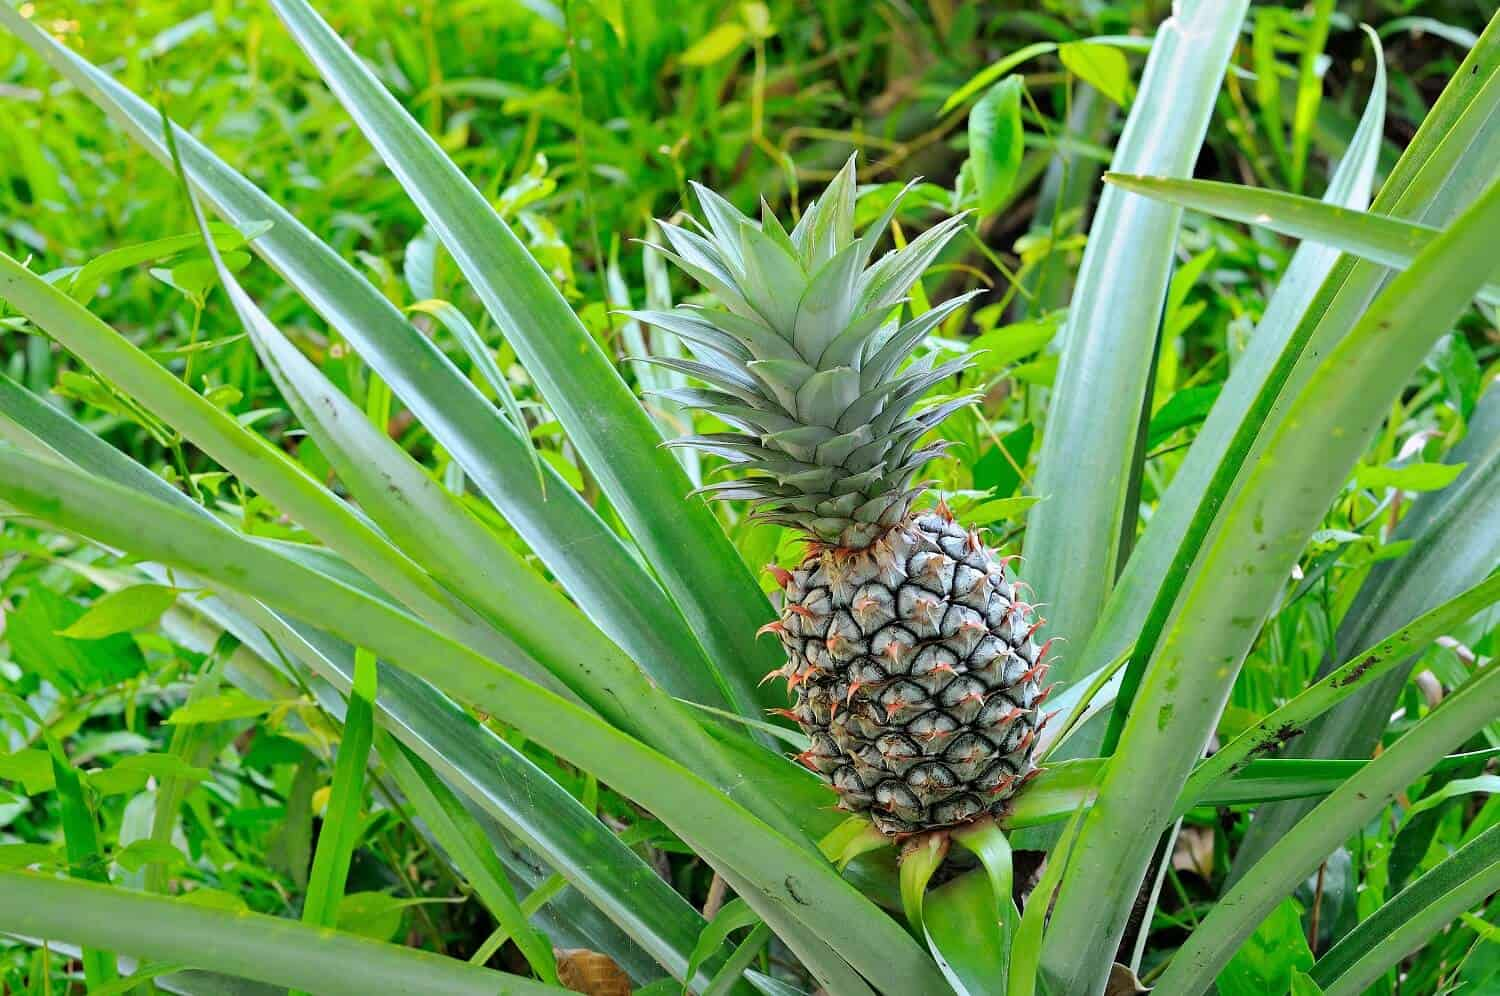 How to Plant Pineapples at Home for Personal Use